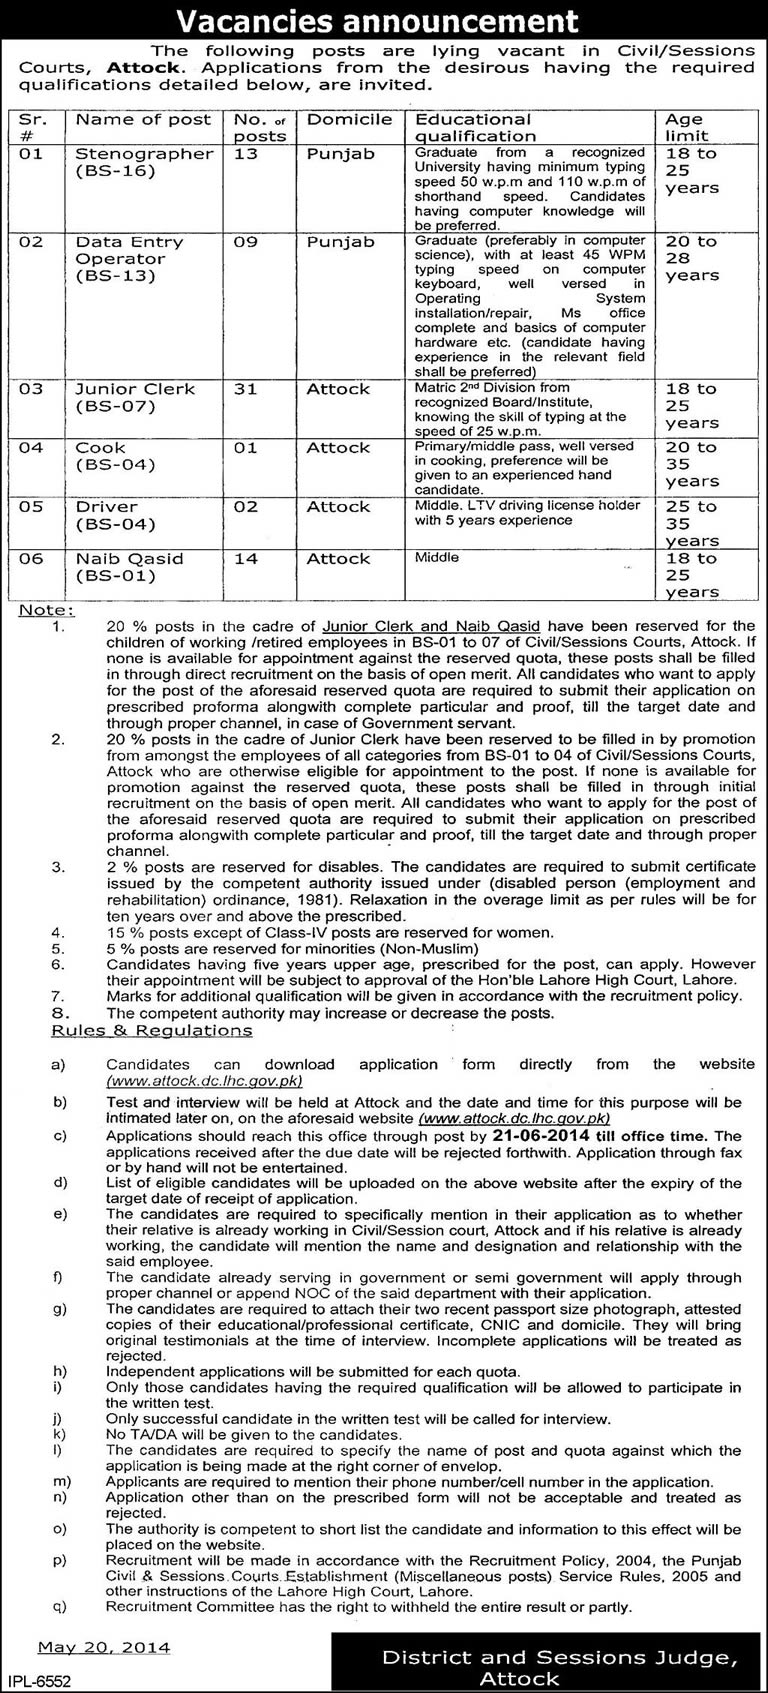 Civil / Session Court Attock Jobs 2014 May Junior Clerks, Stenographers, Data Entry Operators & Others